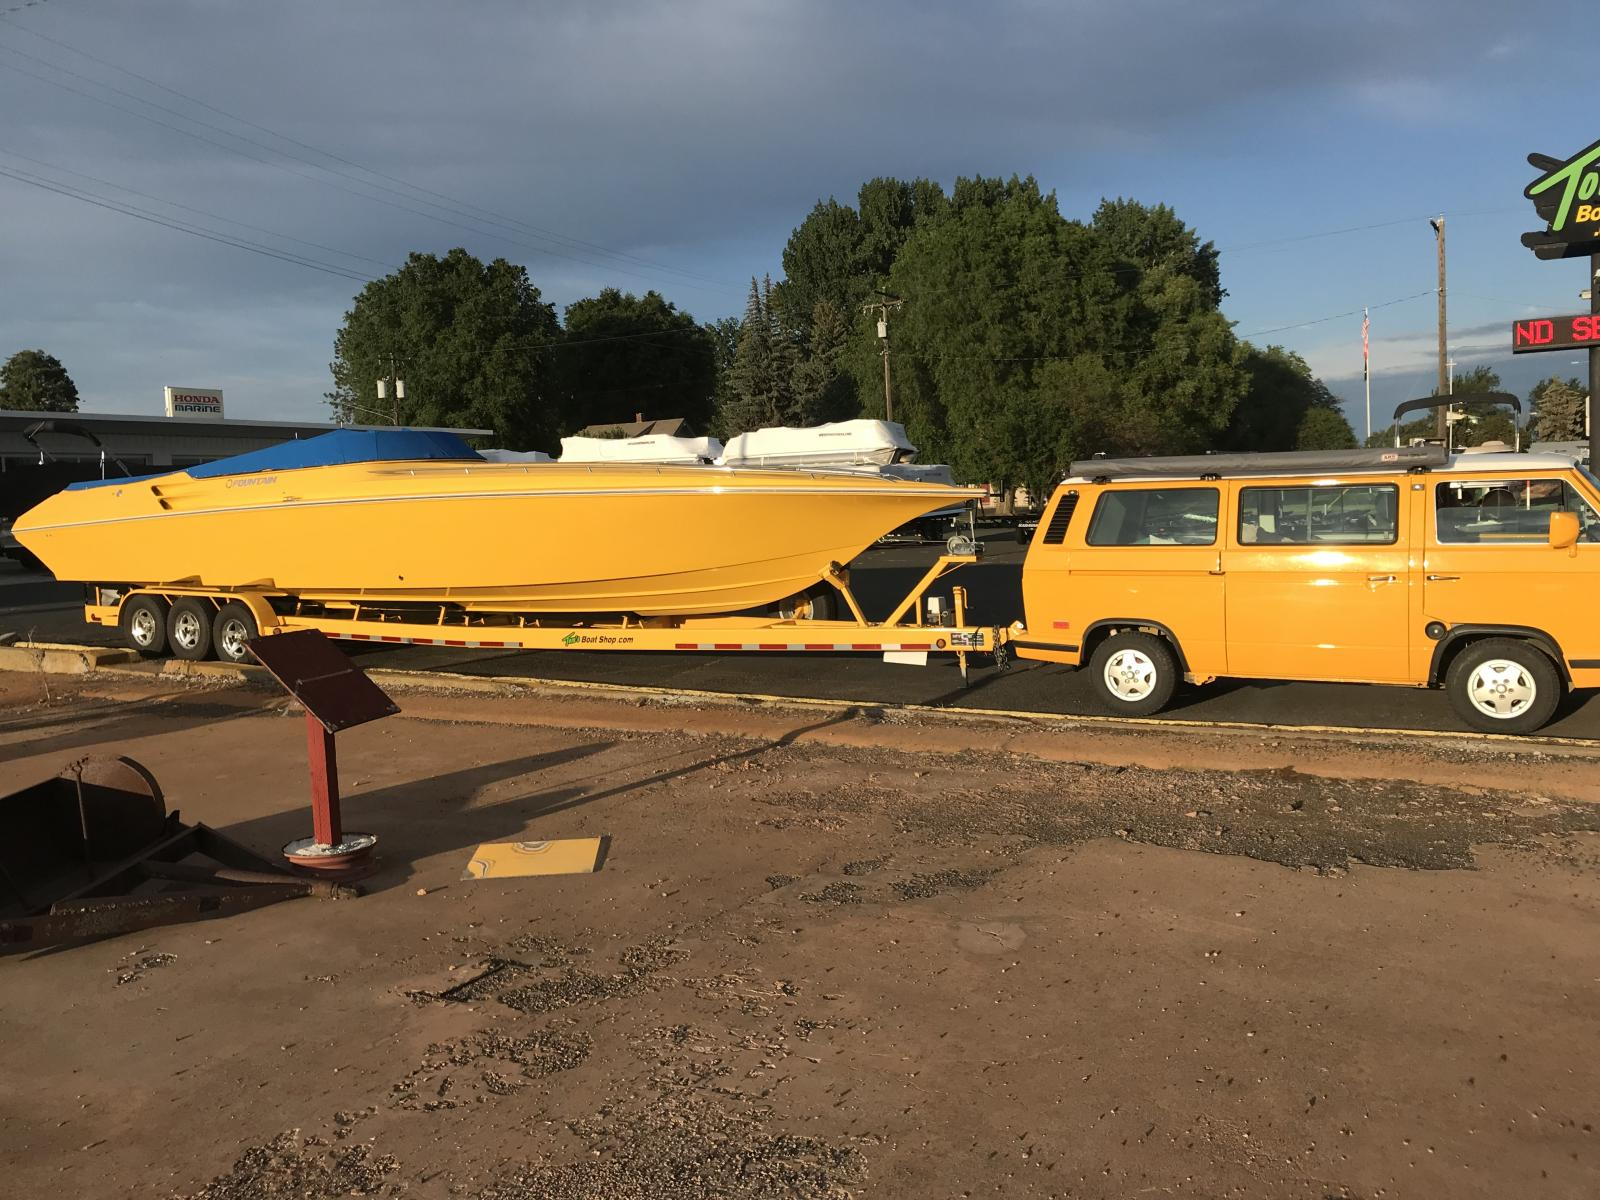 Huge yellow boat